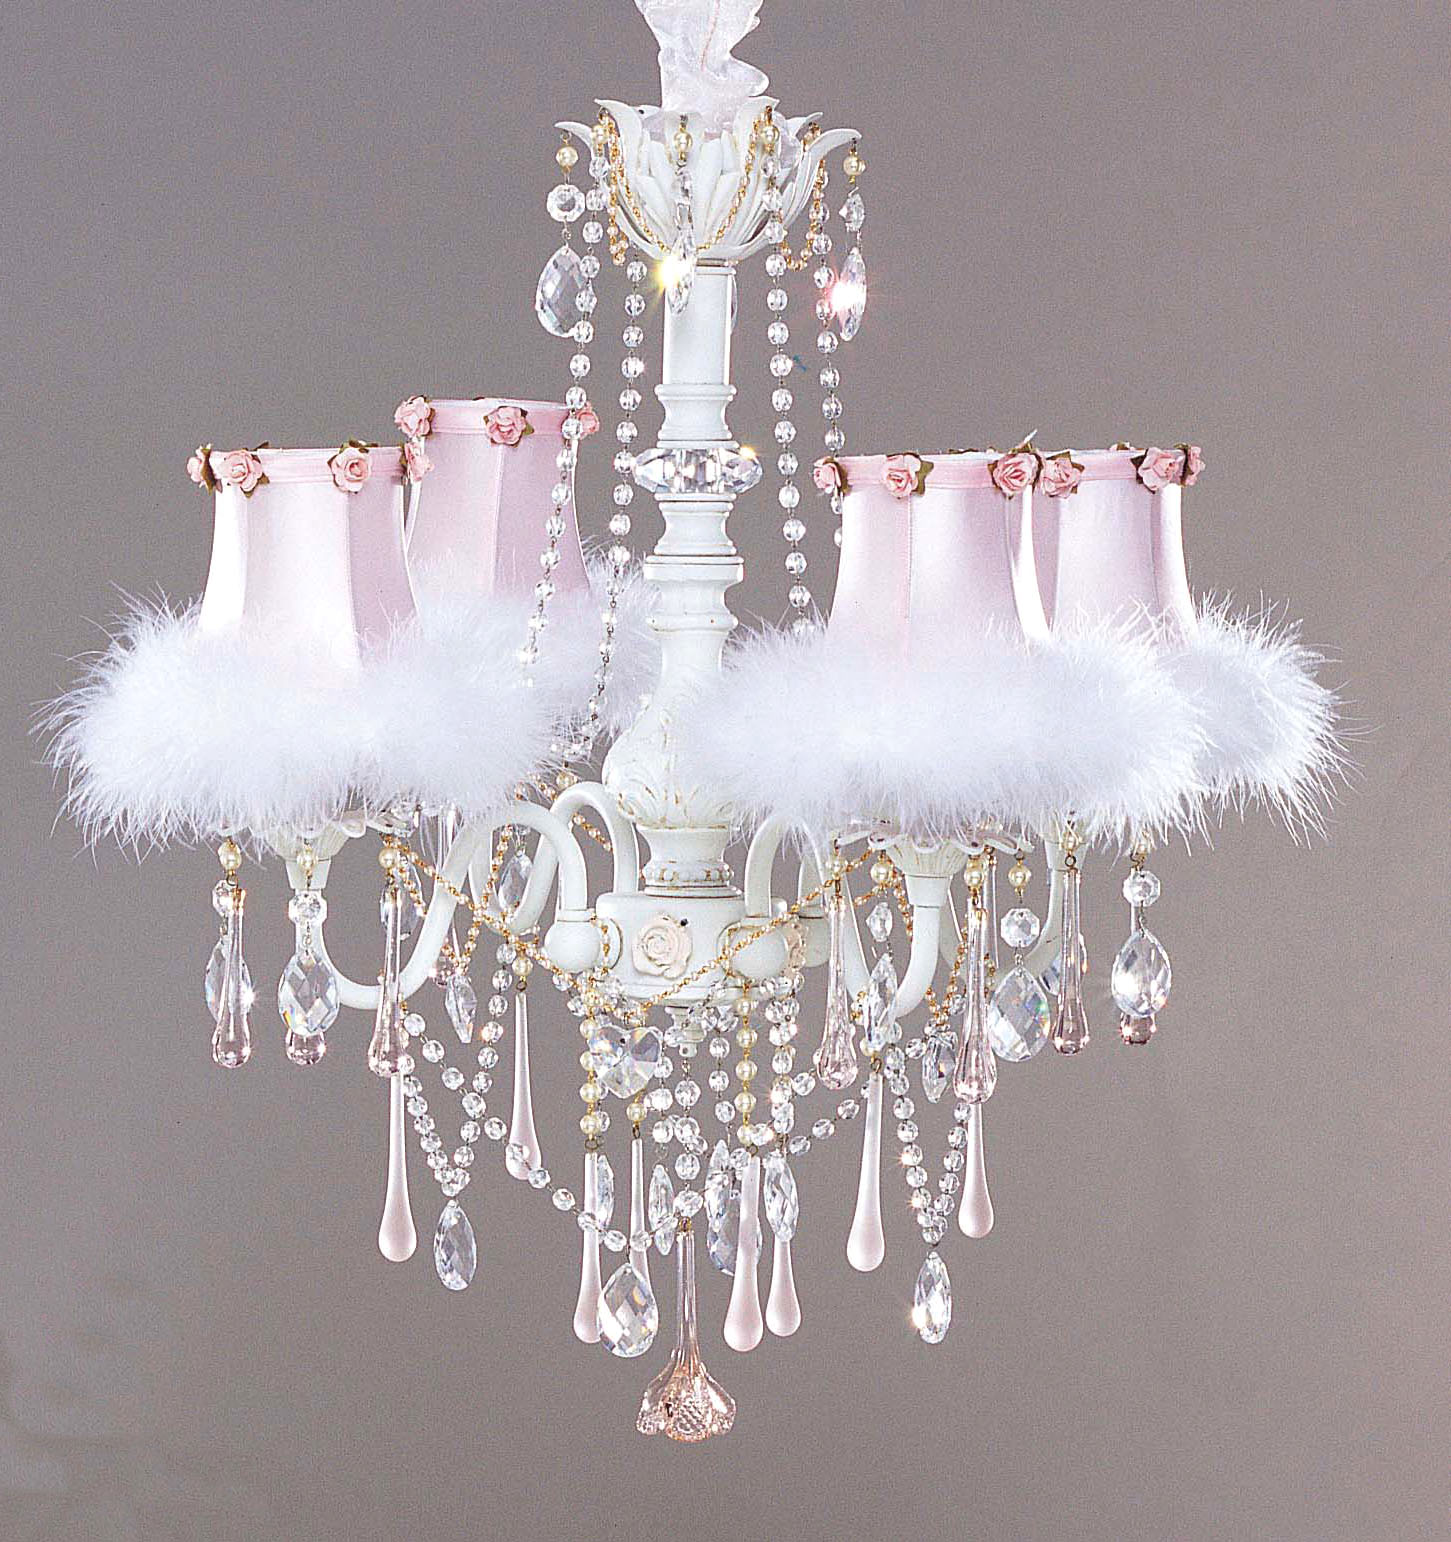 Outstanding Shabby Chic Room Chandelier for Girls 1451 x 1542 · 403 kB · jpeg